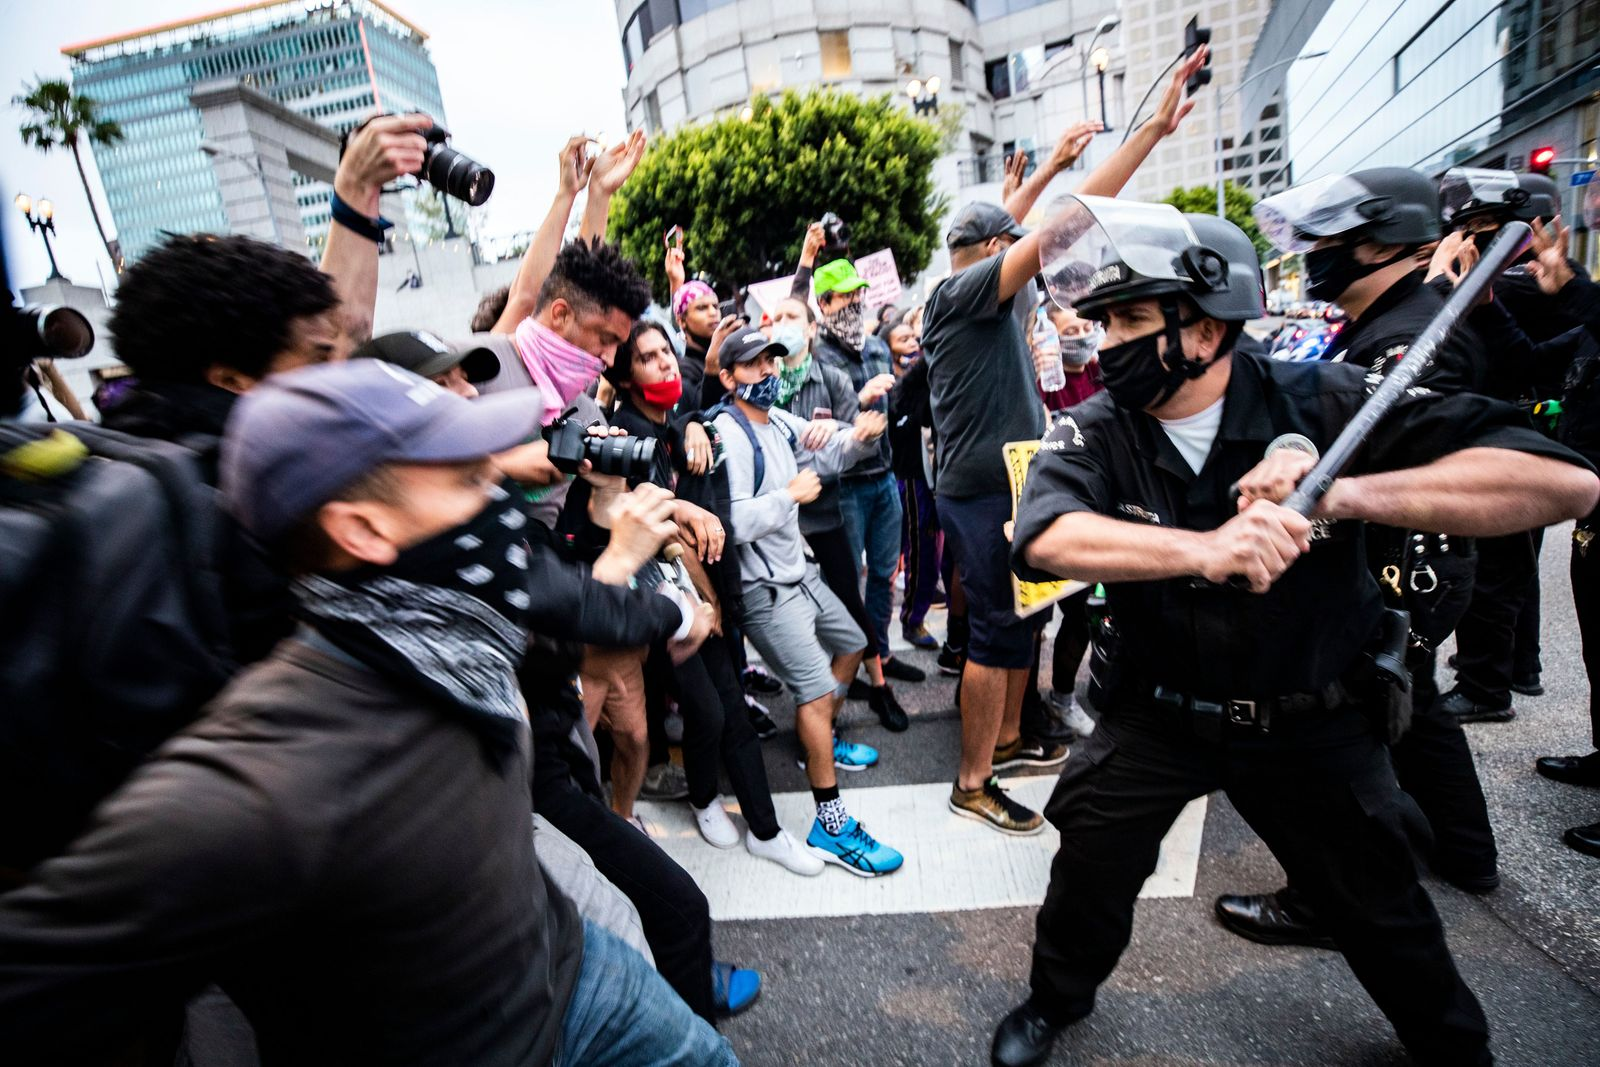 Police abuse protest in wake of George Floyd death, in Los Angeles, USA - 29 May 2020